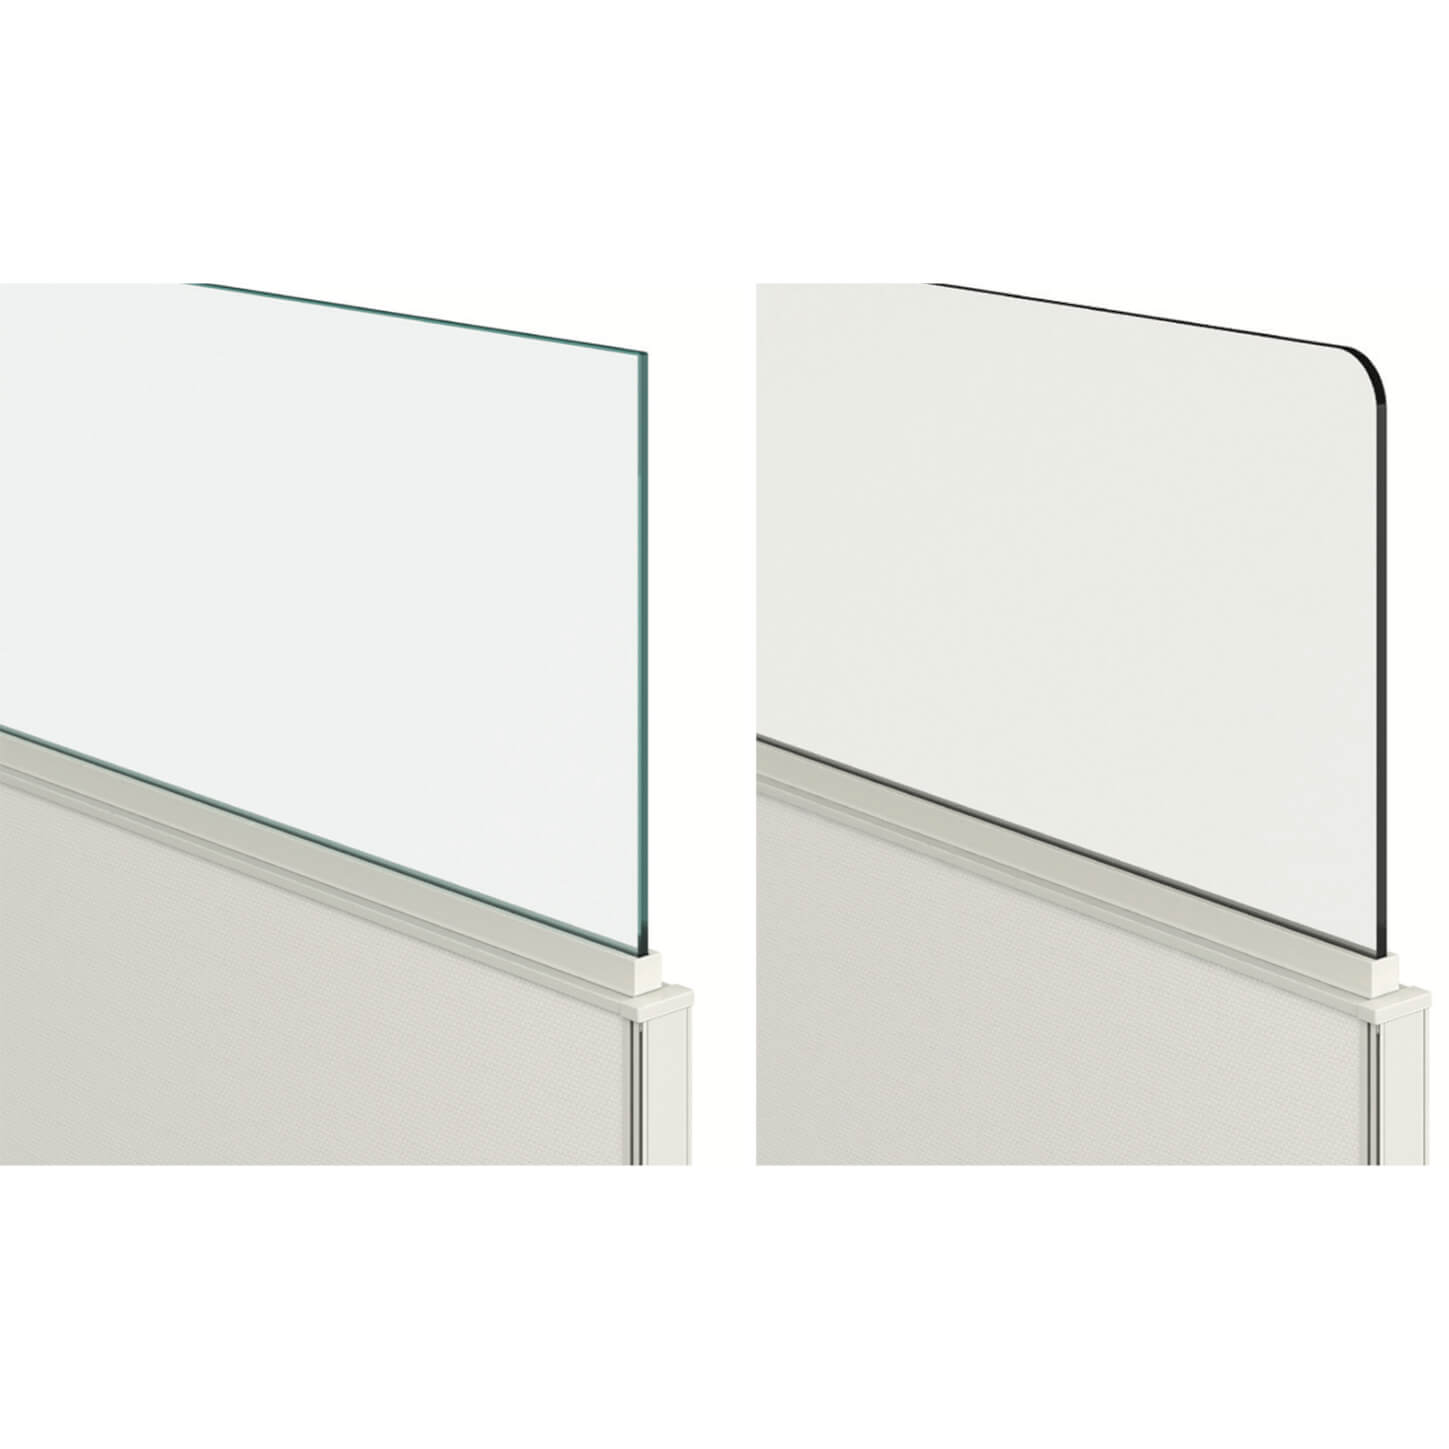 COVID-19 Clear Screen Dividers